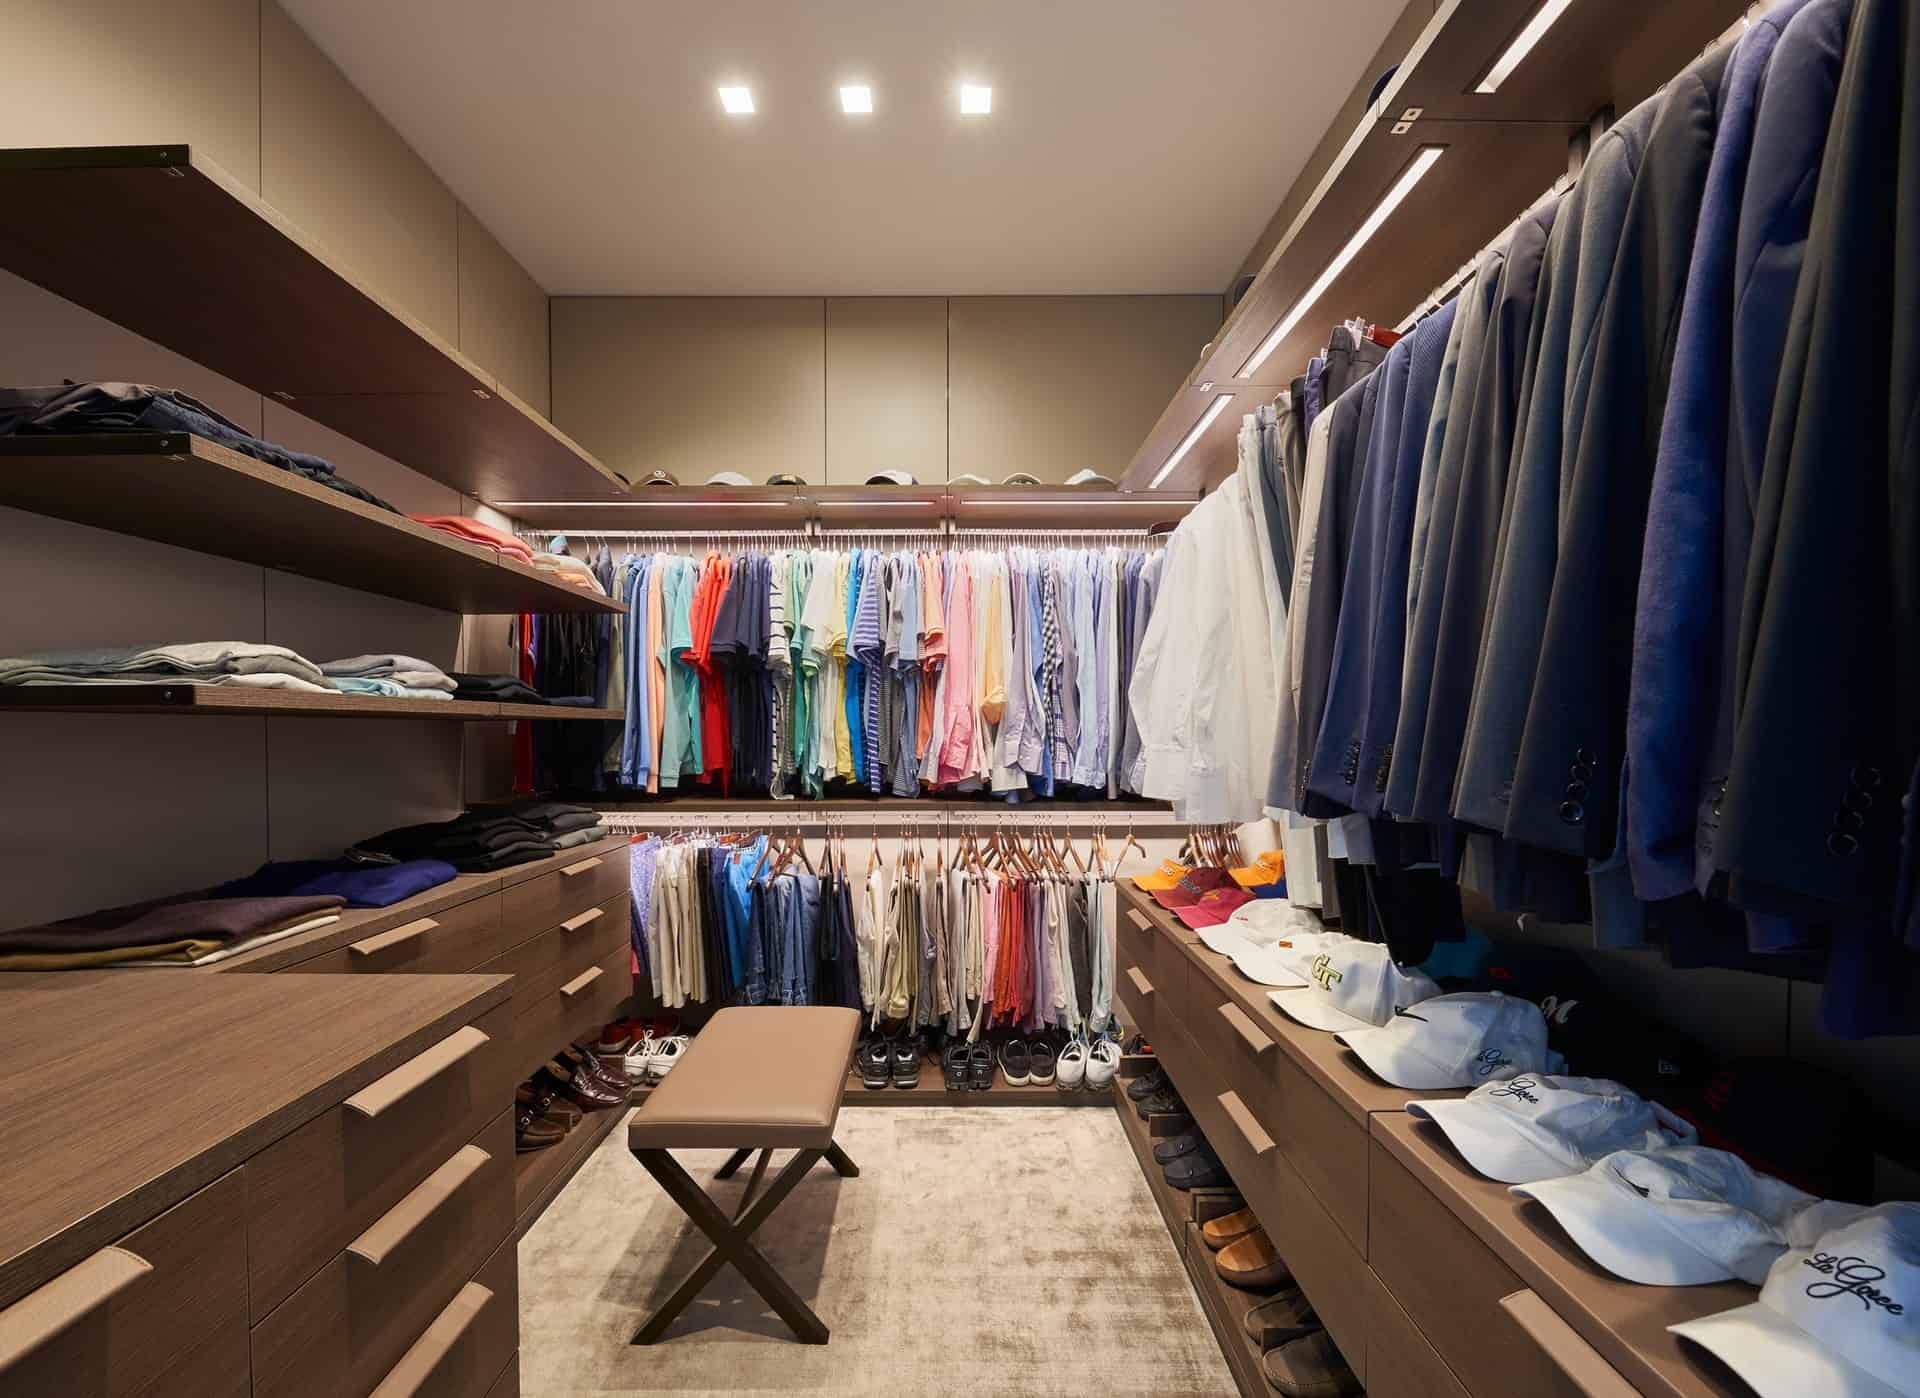 His closet fully custom designed with Schmalenbach solutions